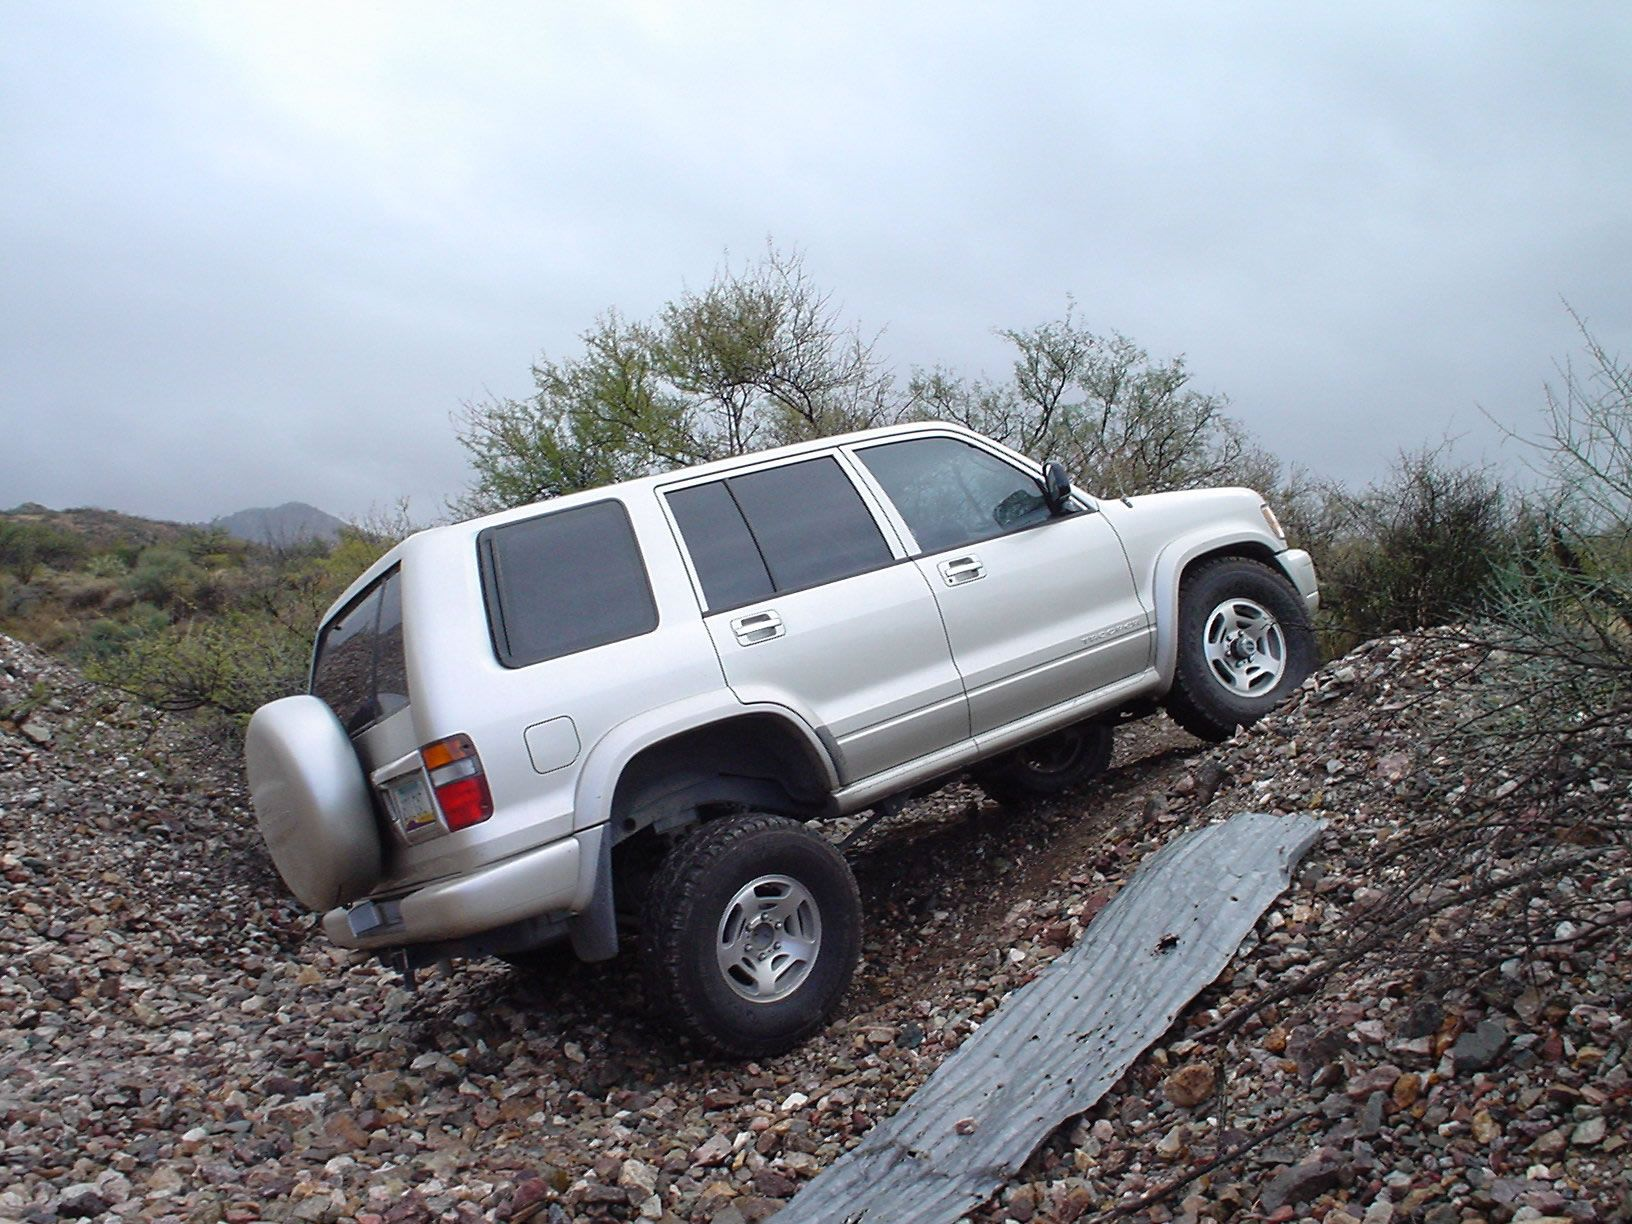 The 1998 2002 Trooper Offers Good Front Suspension Travel For An Independent Front Suspension Ifs Vehicle In 1998 Isuzu Used Trooper Travel Control Arms